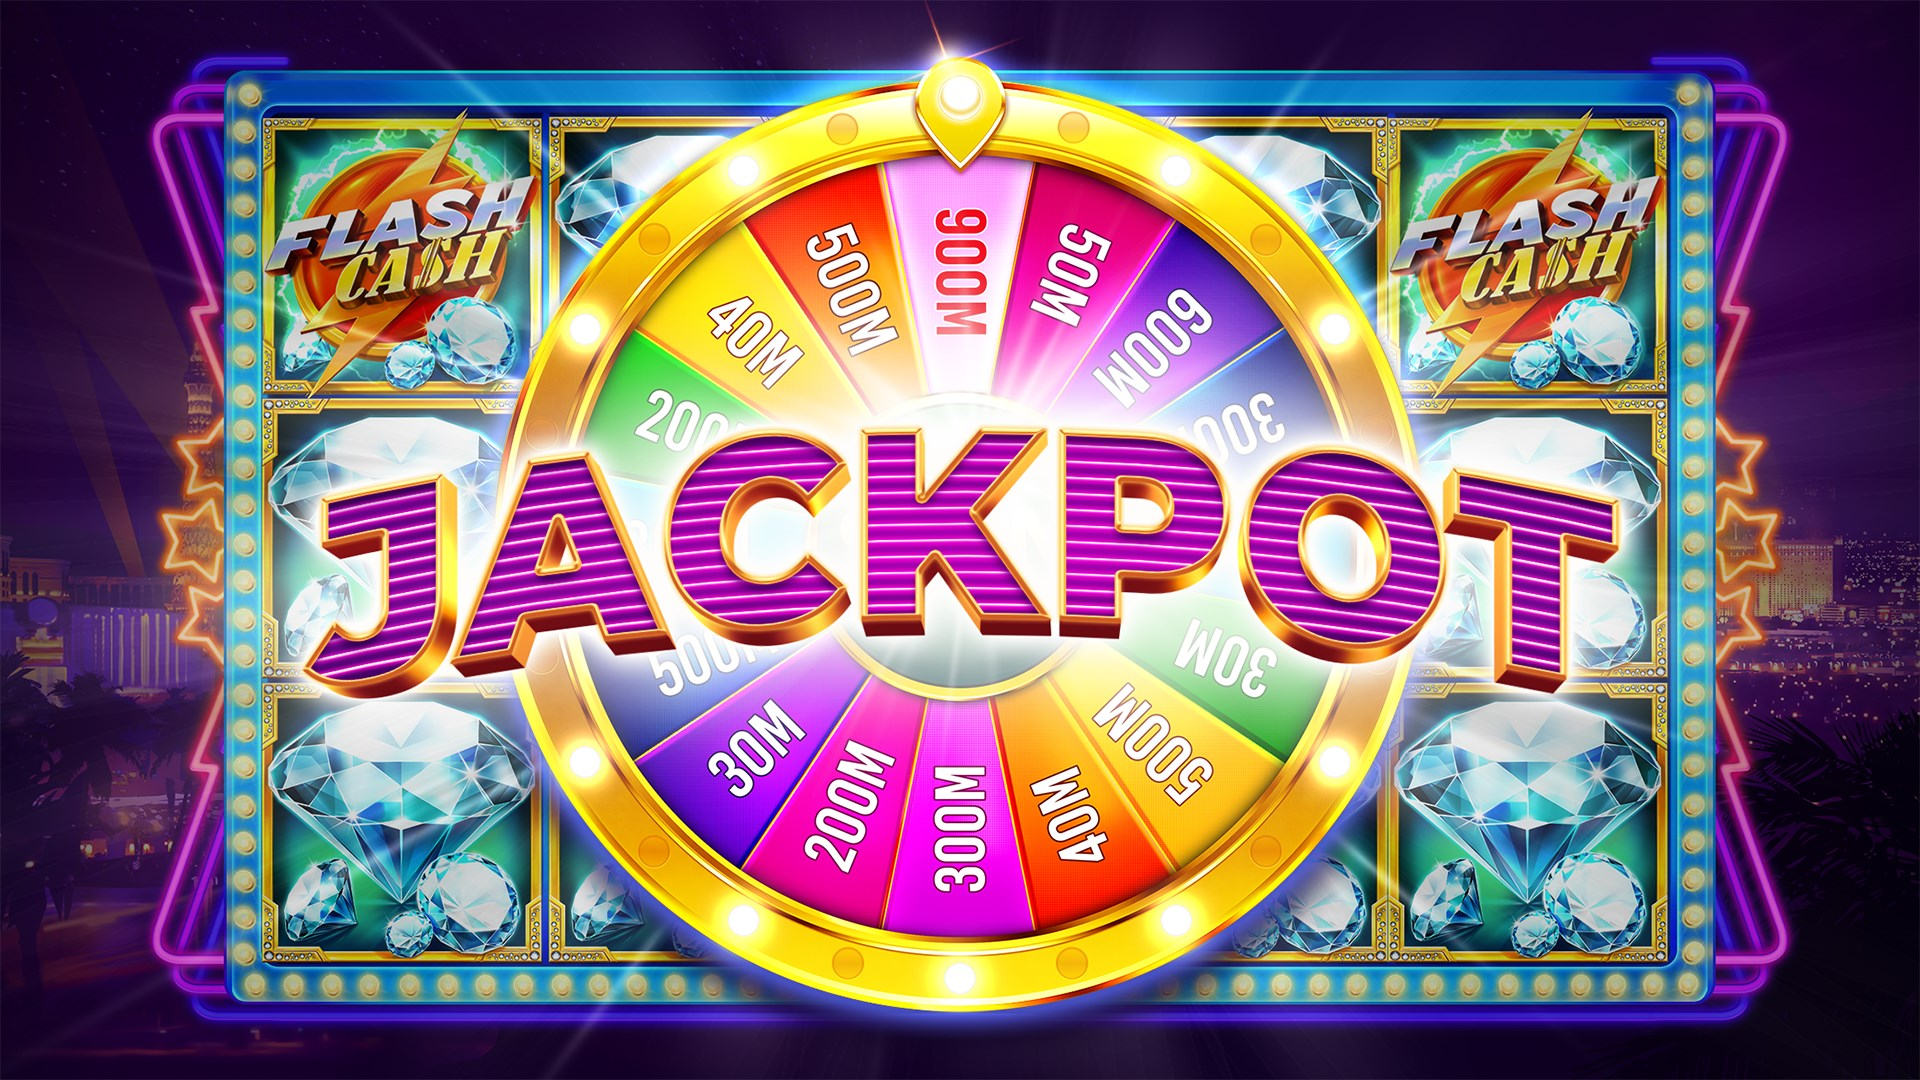 Top Slot Game Online